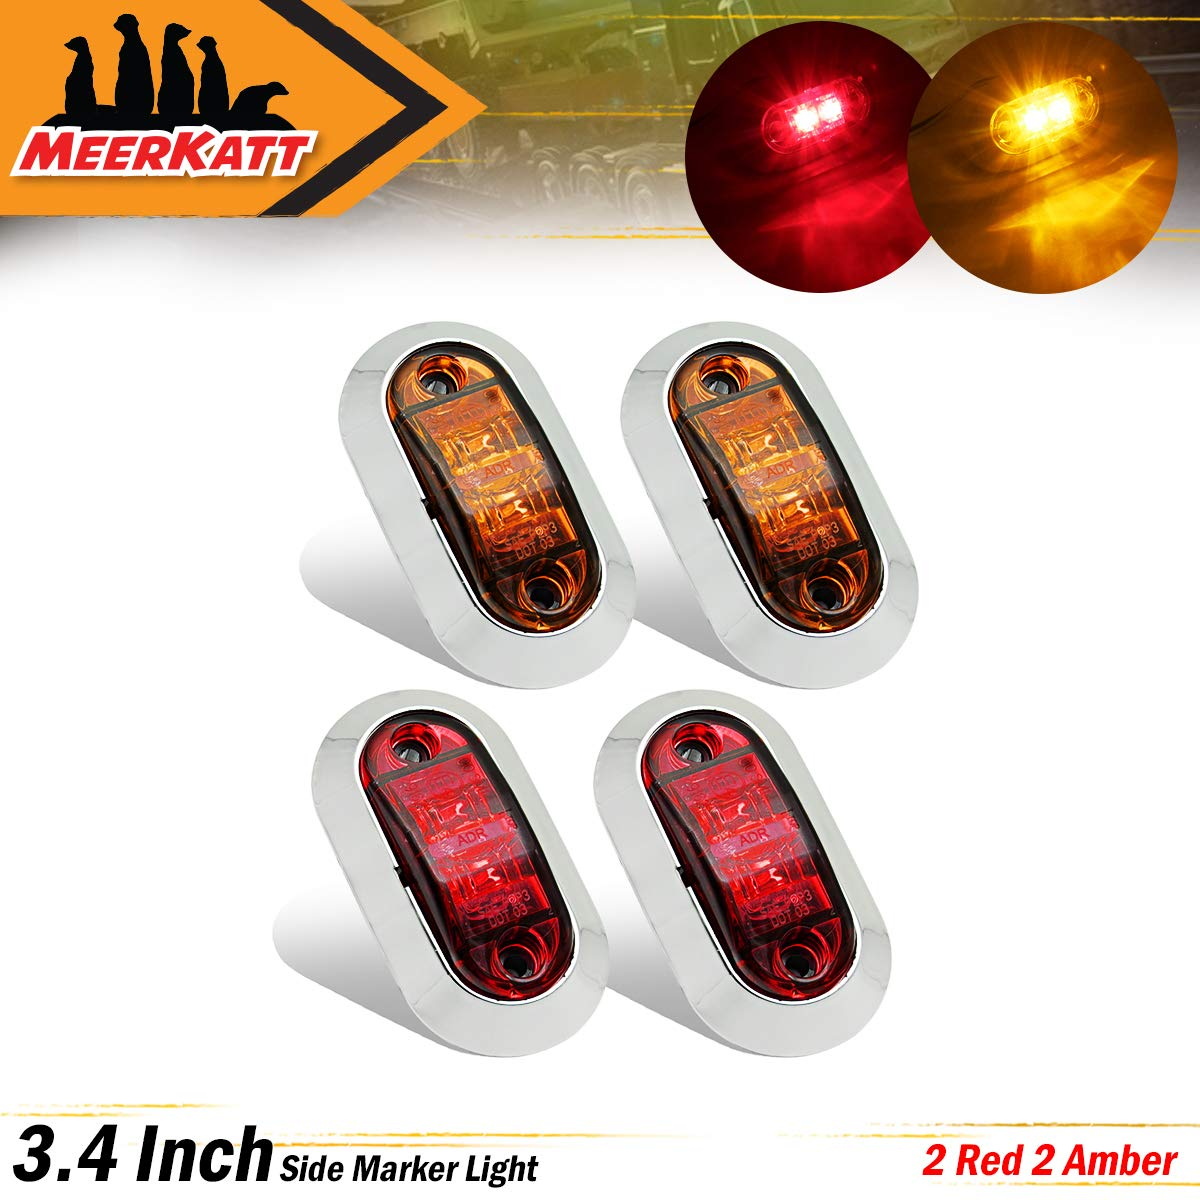 Meerkatt 2.5 Inch Oval Amber Surface Mount LED Clearance Lamp Side Marker Lights Waterproof Sealed Bulb w//Chrome Bezel Truck RV Lorry Trailer Bus Jeep Van Tow Multi-Volt 10-30V DC LM-CHS Pack of 2